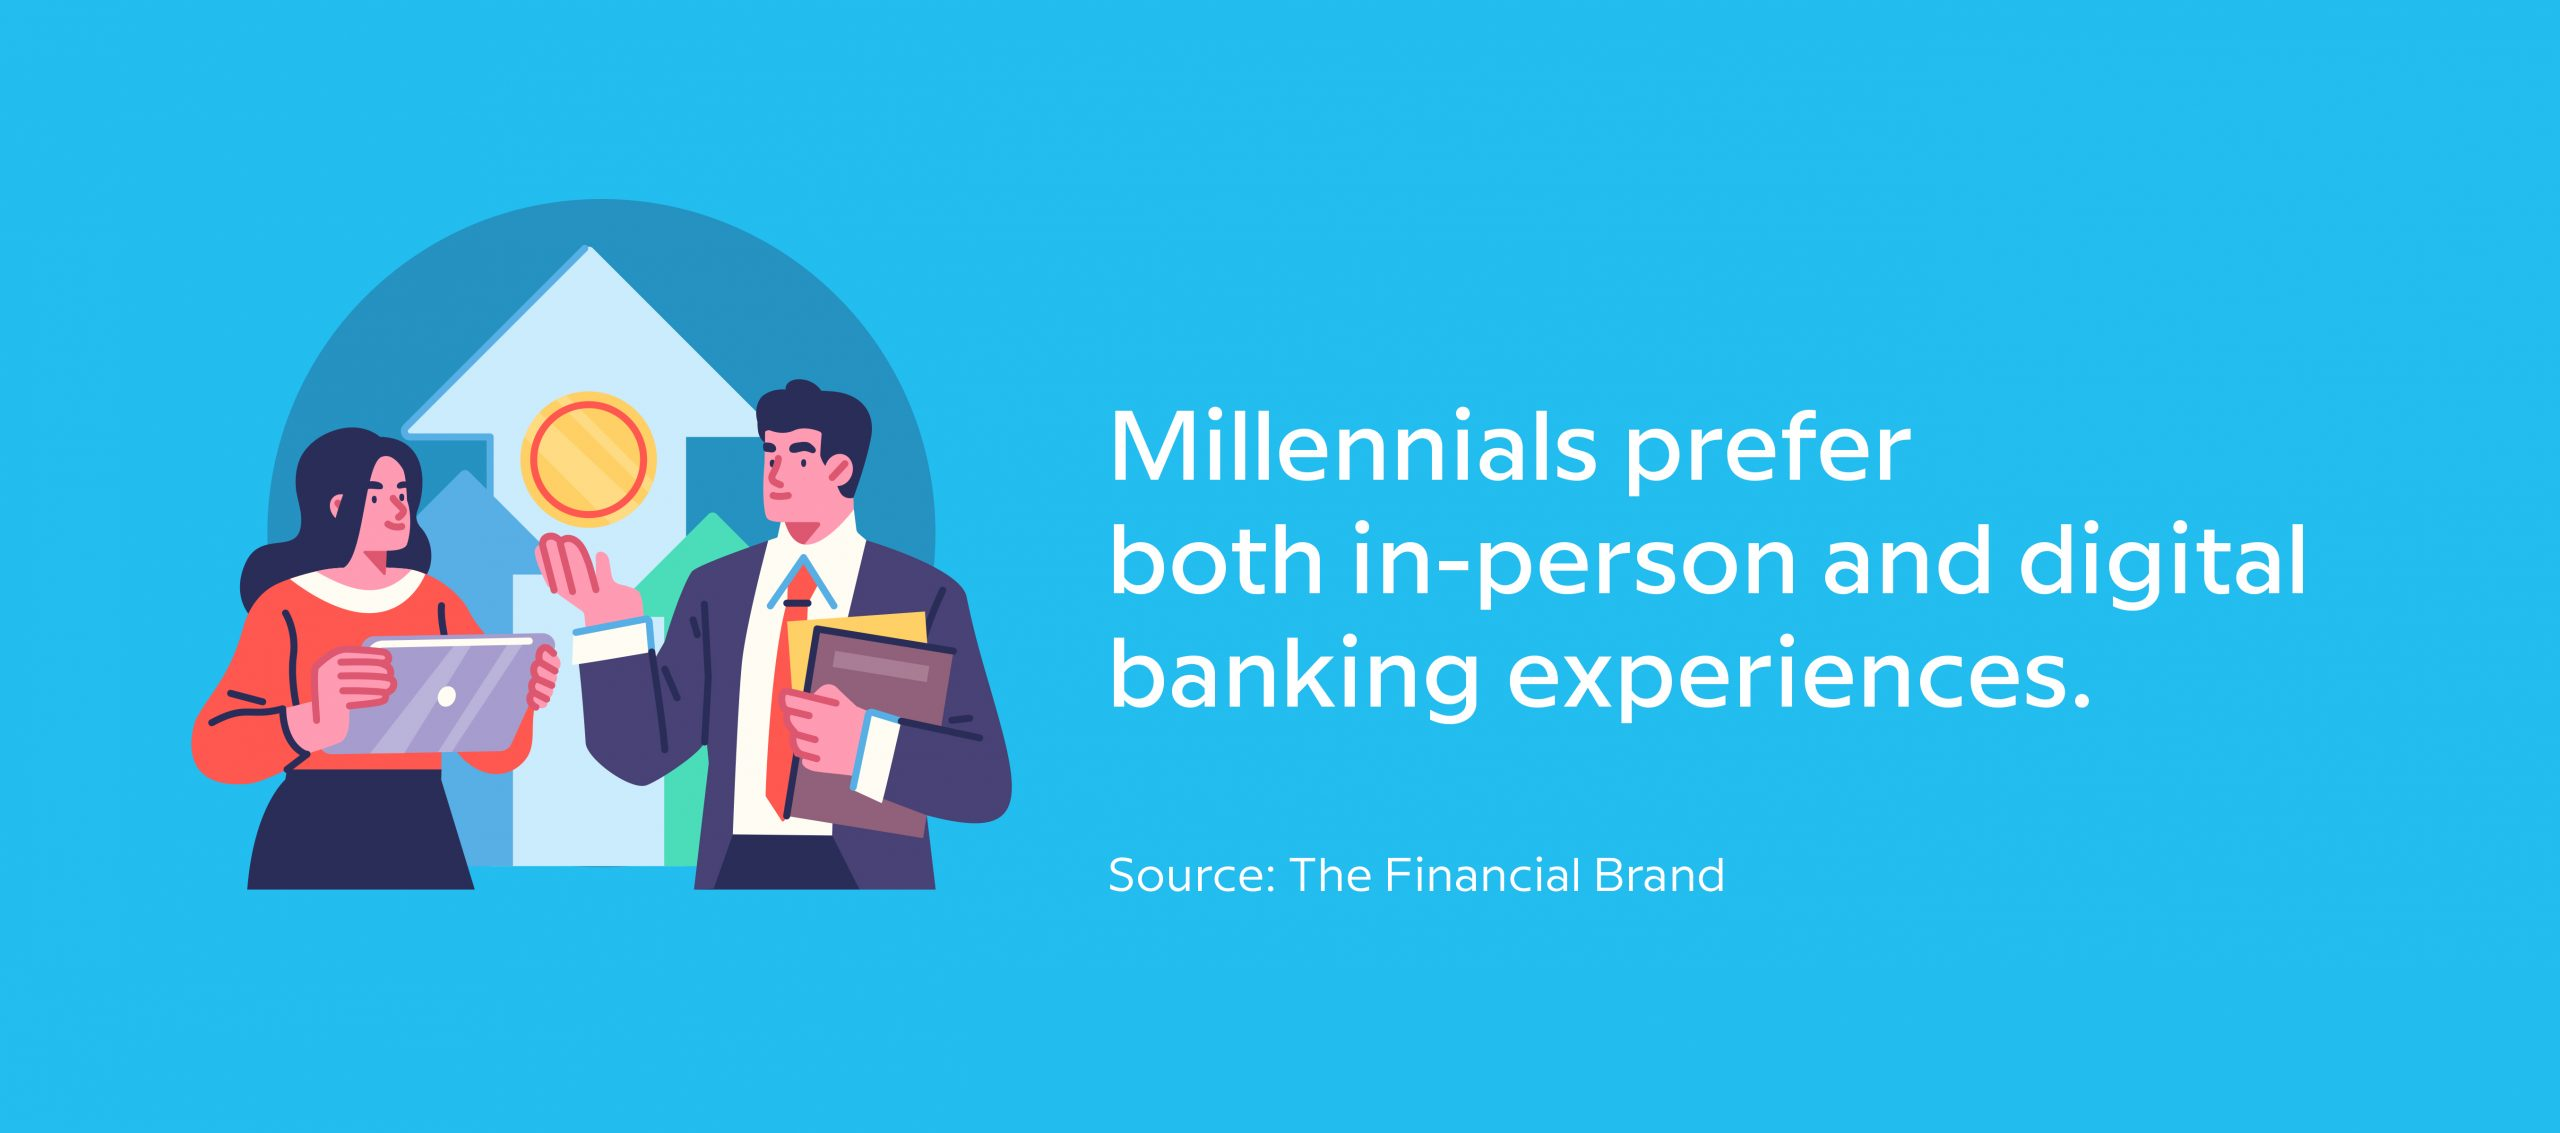 Millennials prefer both in-person and digital banking experiences - Source The Financial Brand - Image of a woman with a tablet talking to a financial advisor